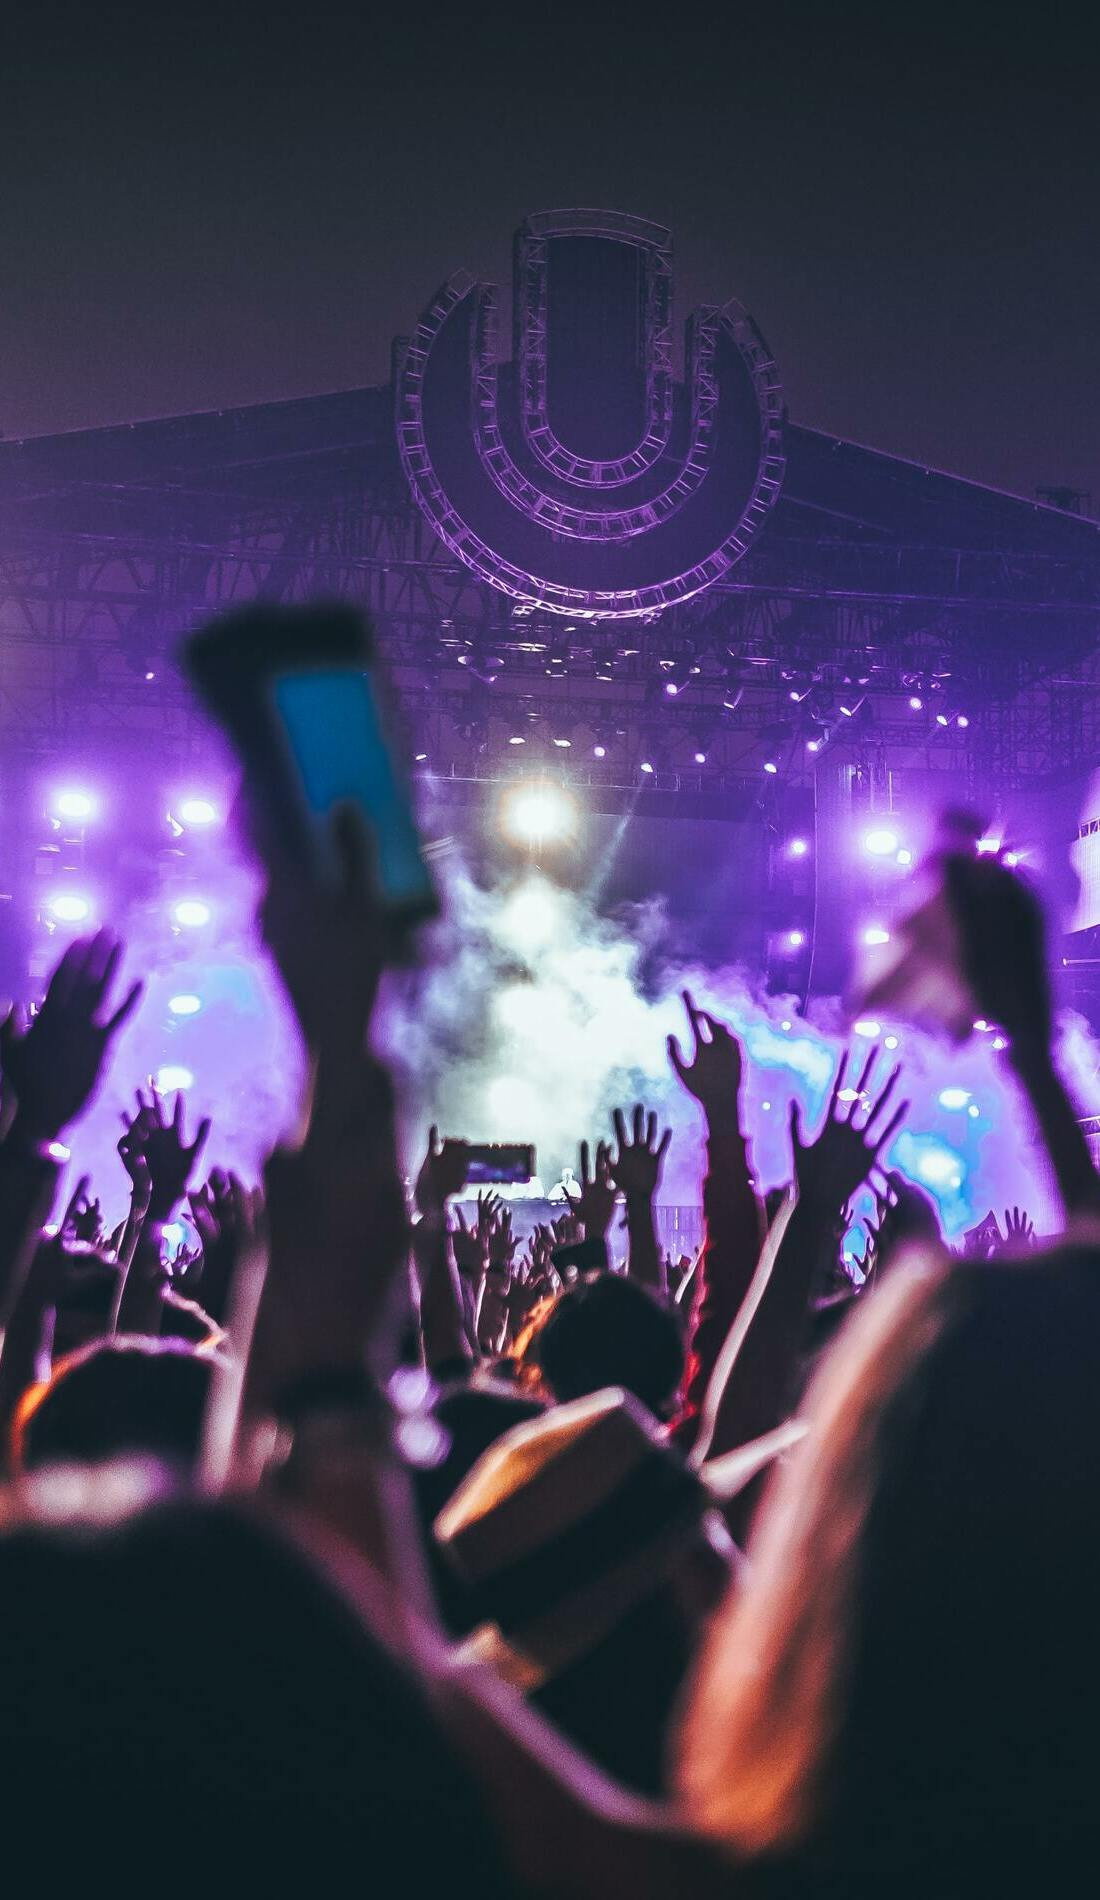 A Ultra Music Festival live event